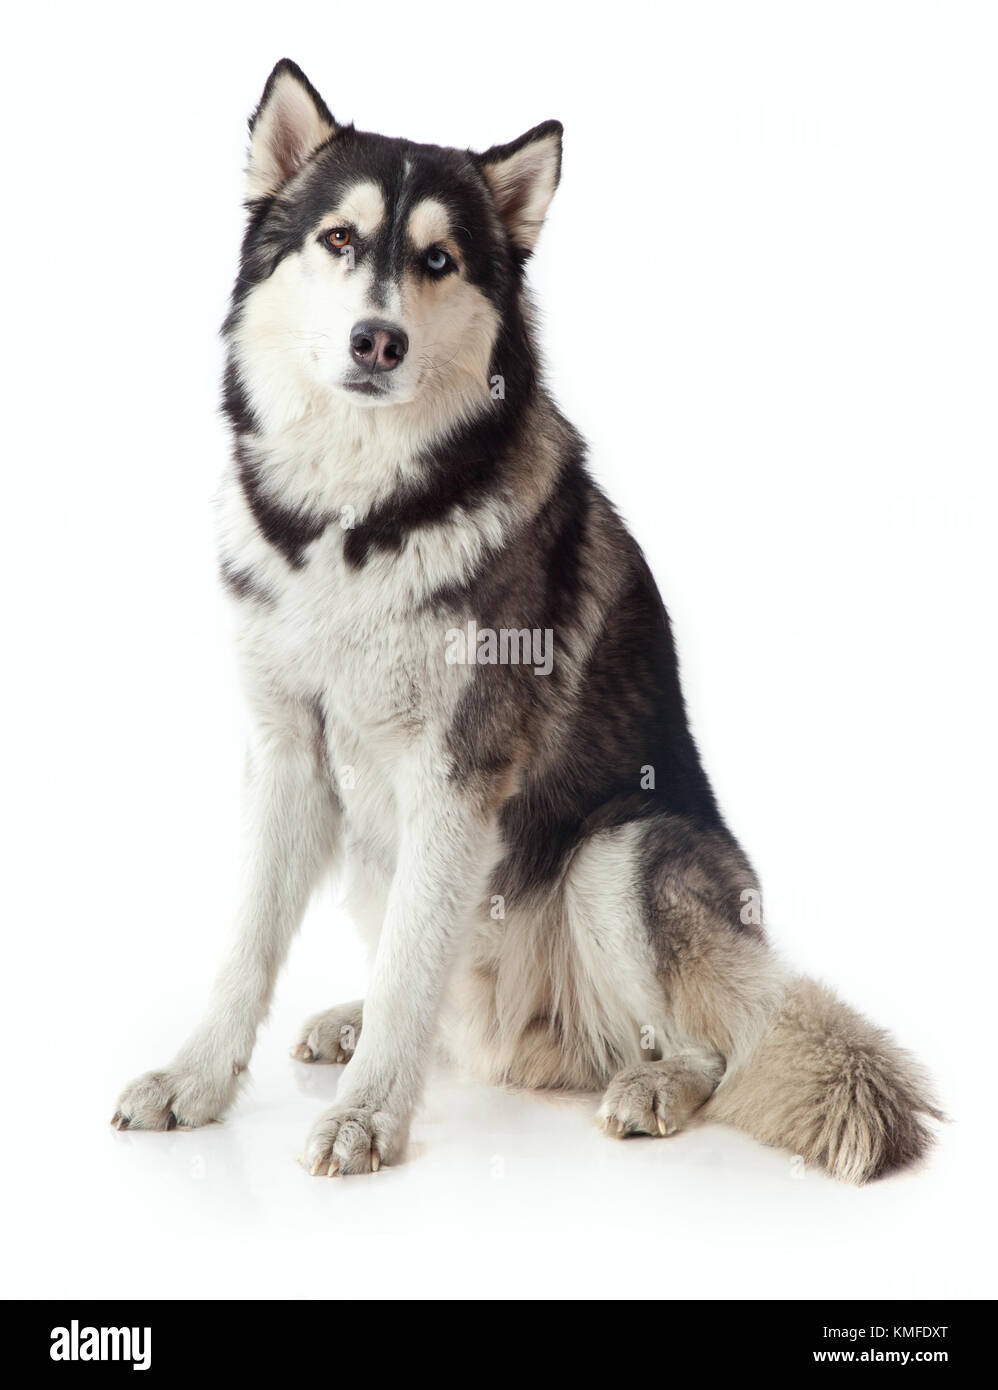 adult male husky in the studio on a white background - Stock Image